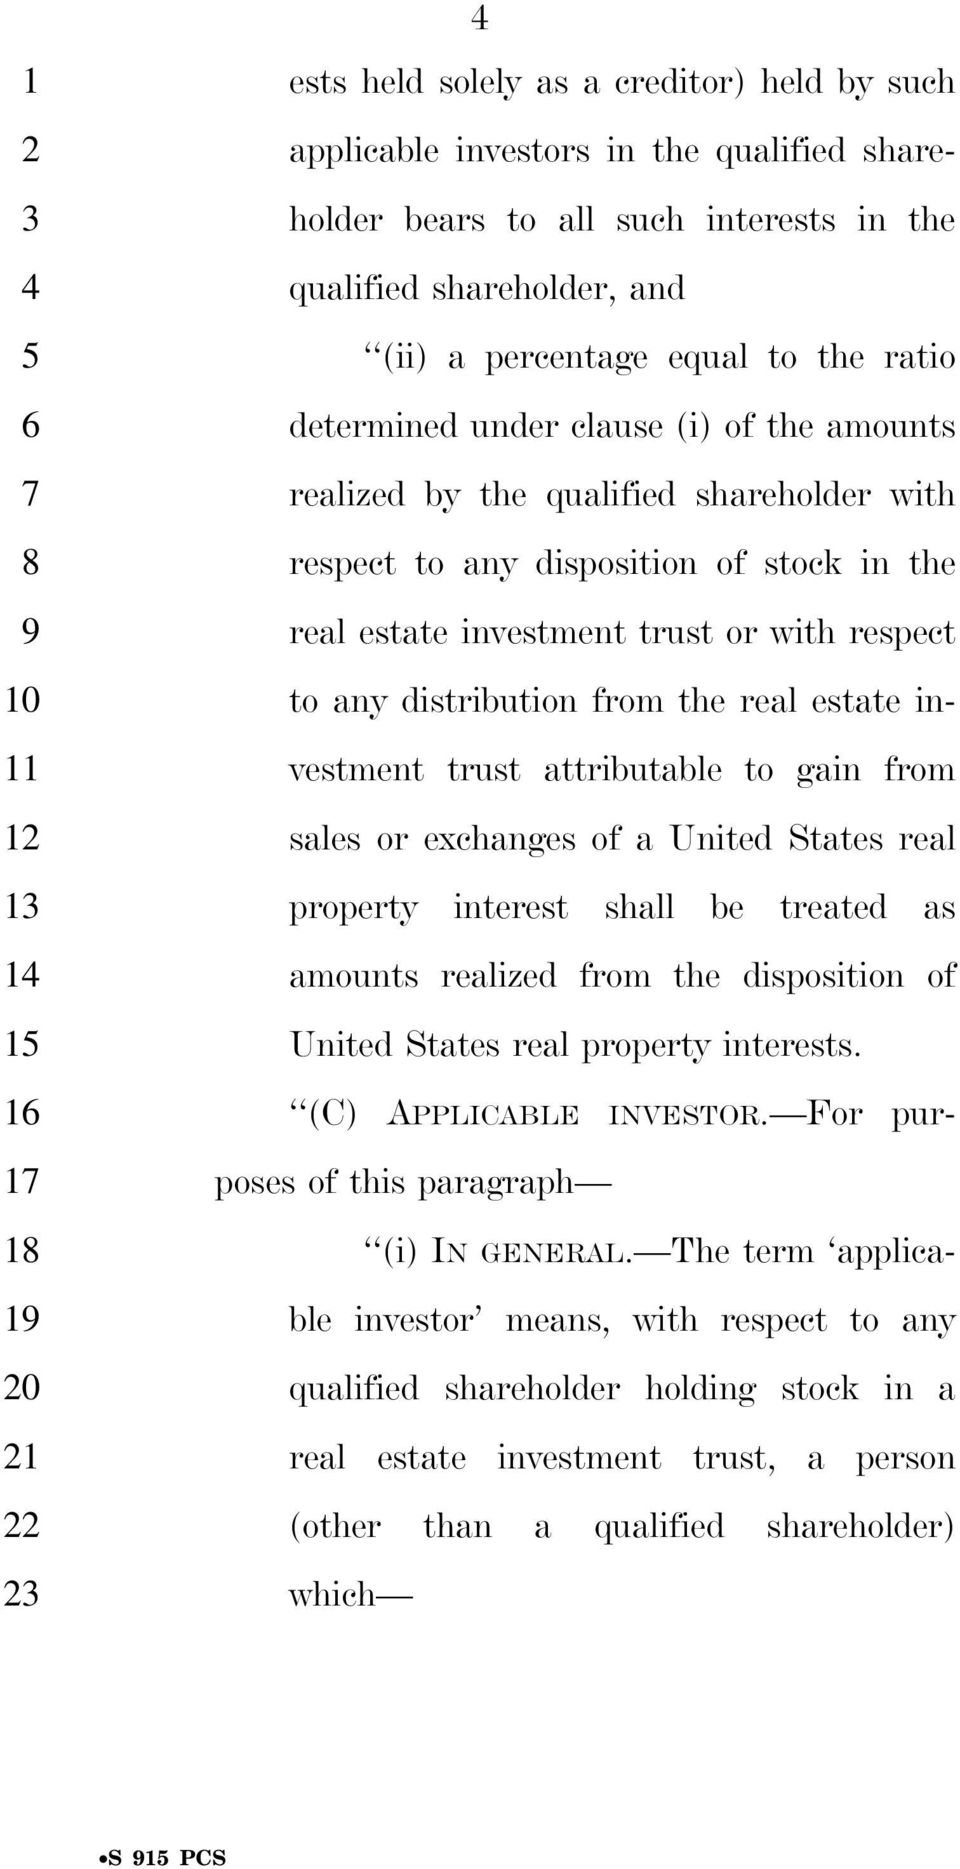 the real estate investment trust attributable to gain from sales or exchanges of a United States real property interest shall be treated as amounts realized from the disposition of United States real